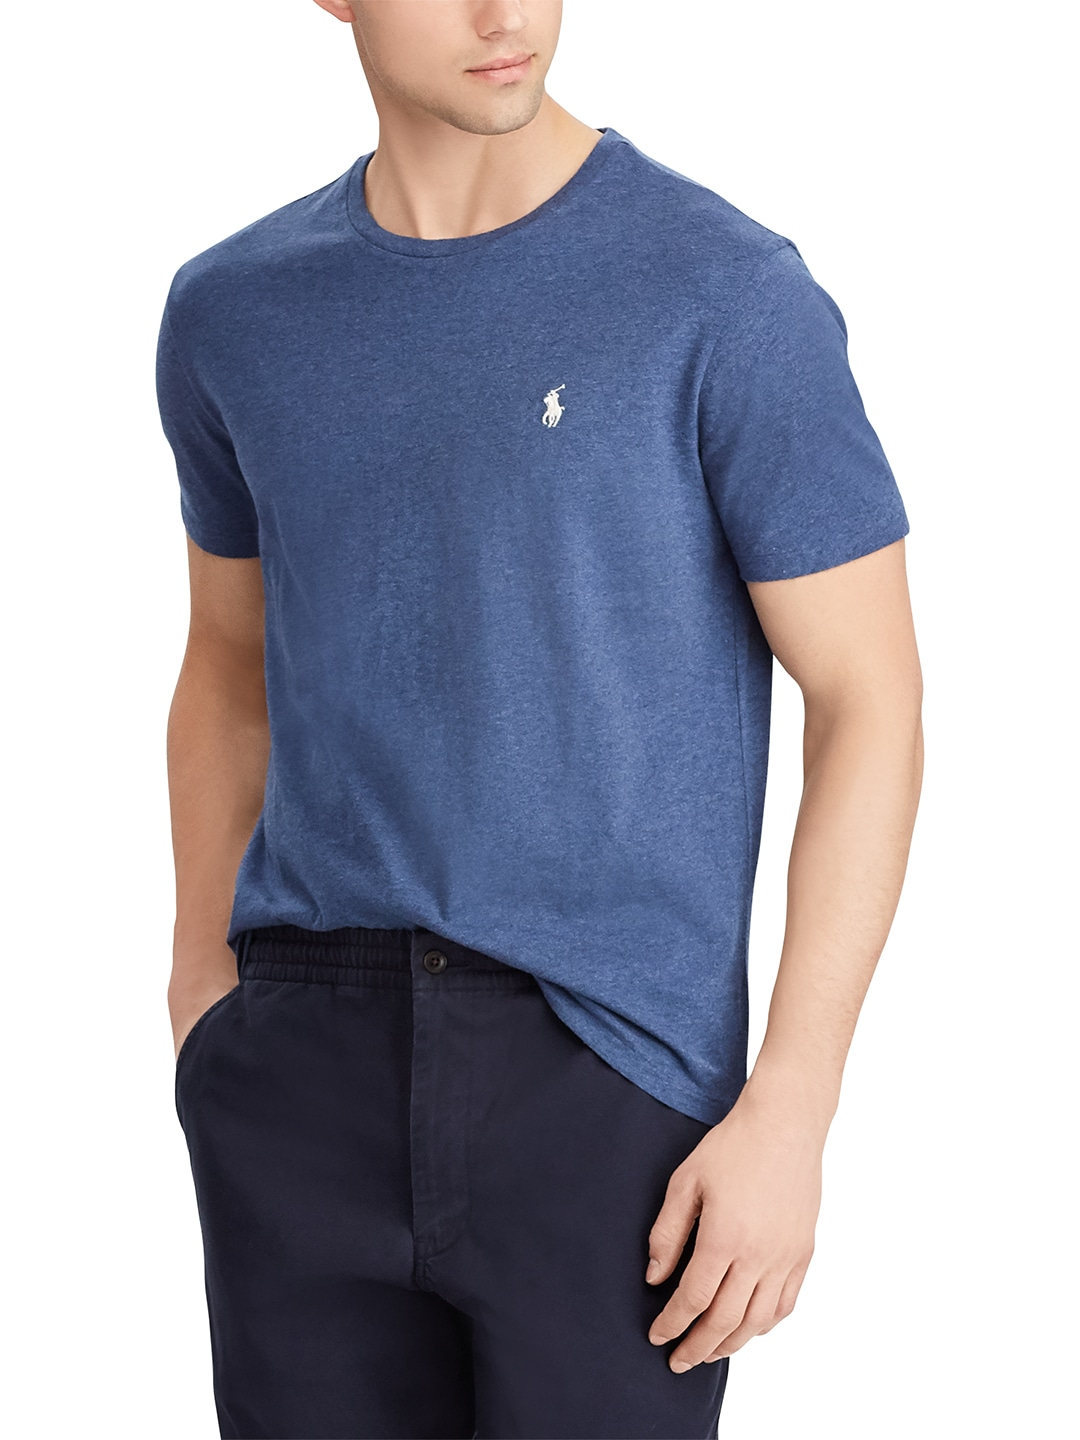 79b6bf5637def Polo Ralph Lauren - Buy Polo Ralph Lauren Products Online